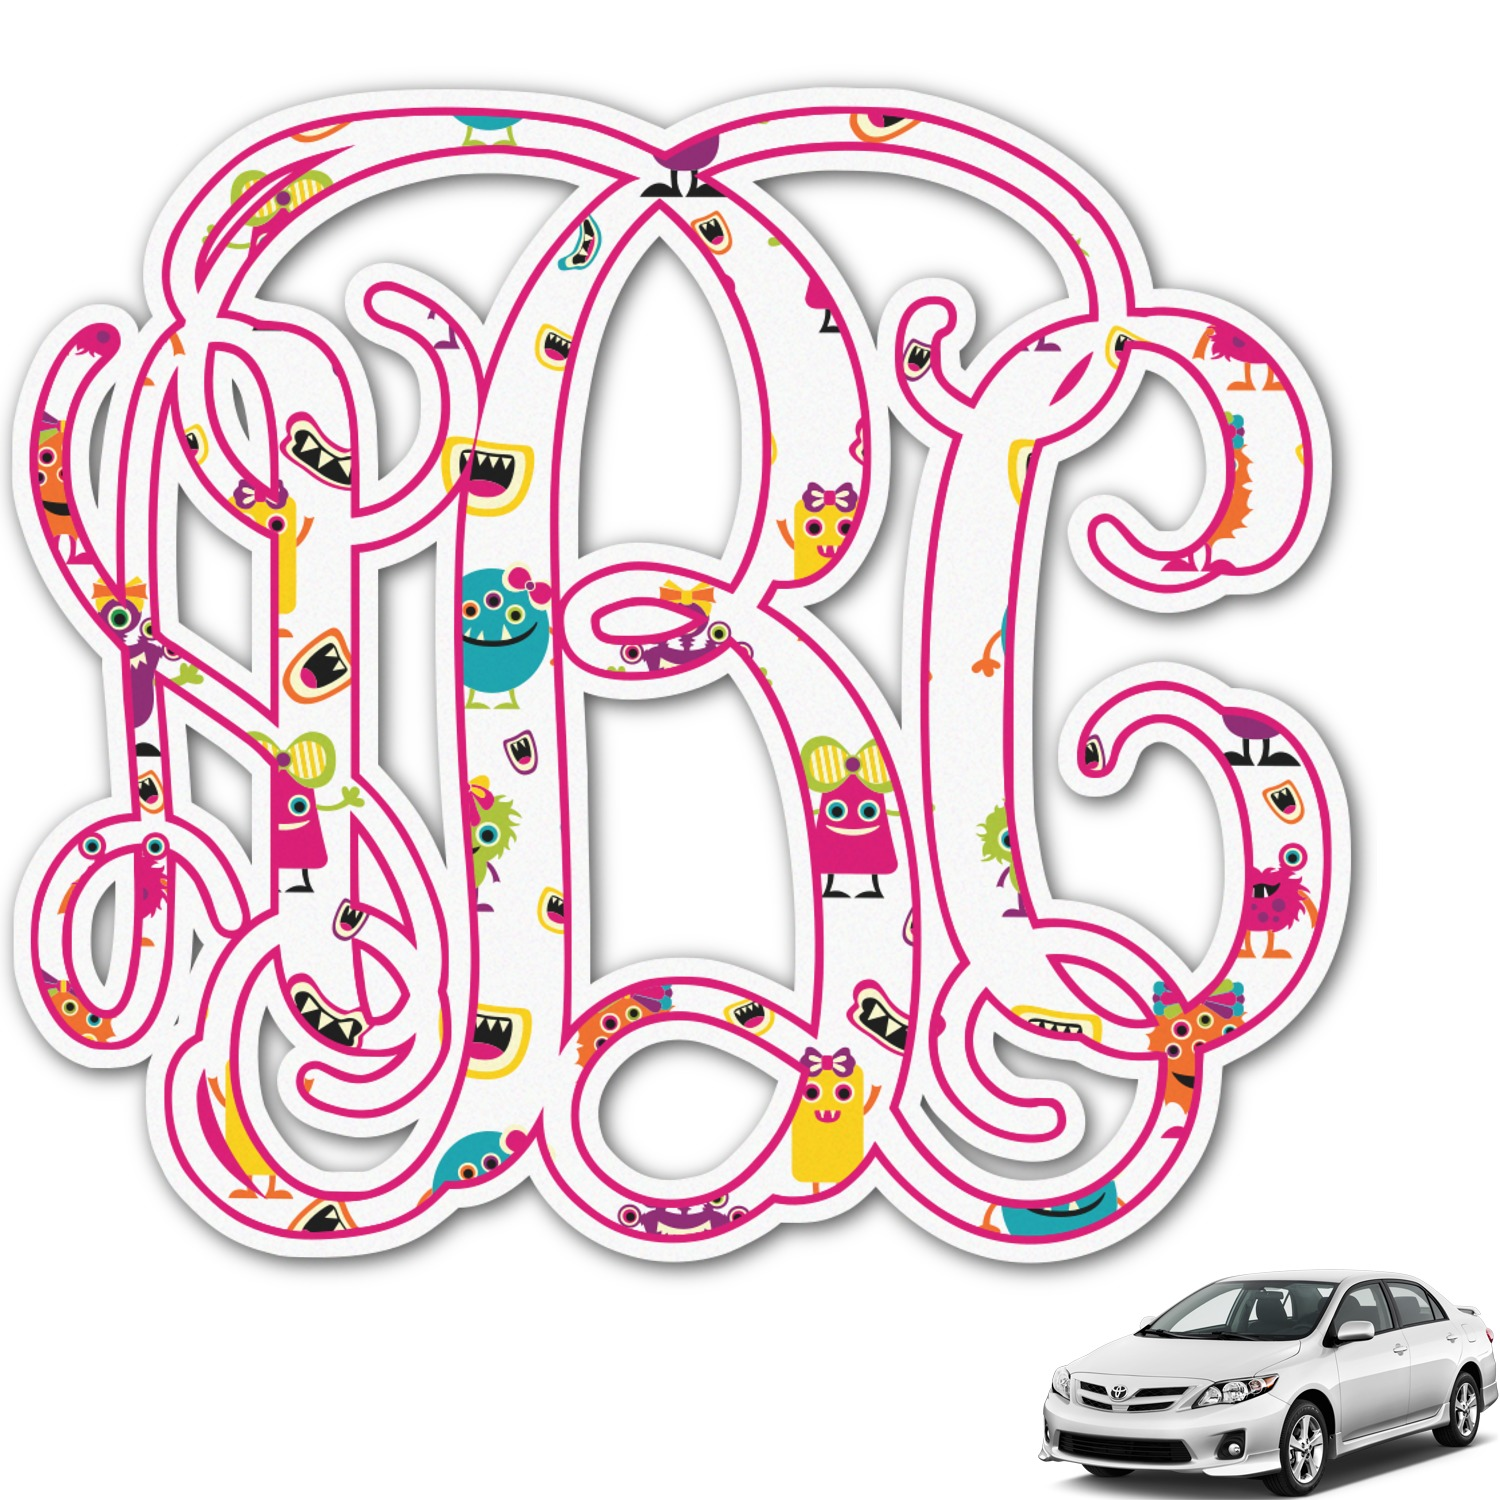 Girly monsters monogram car decal personalized